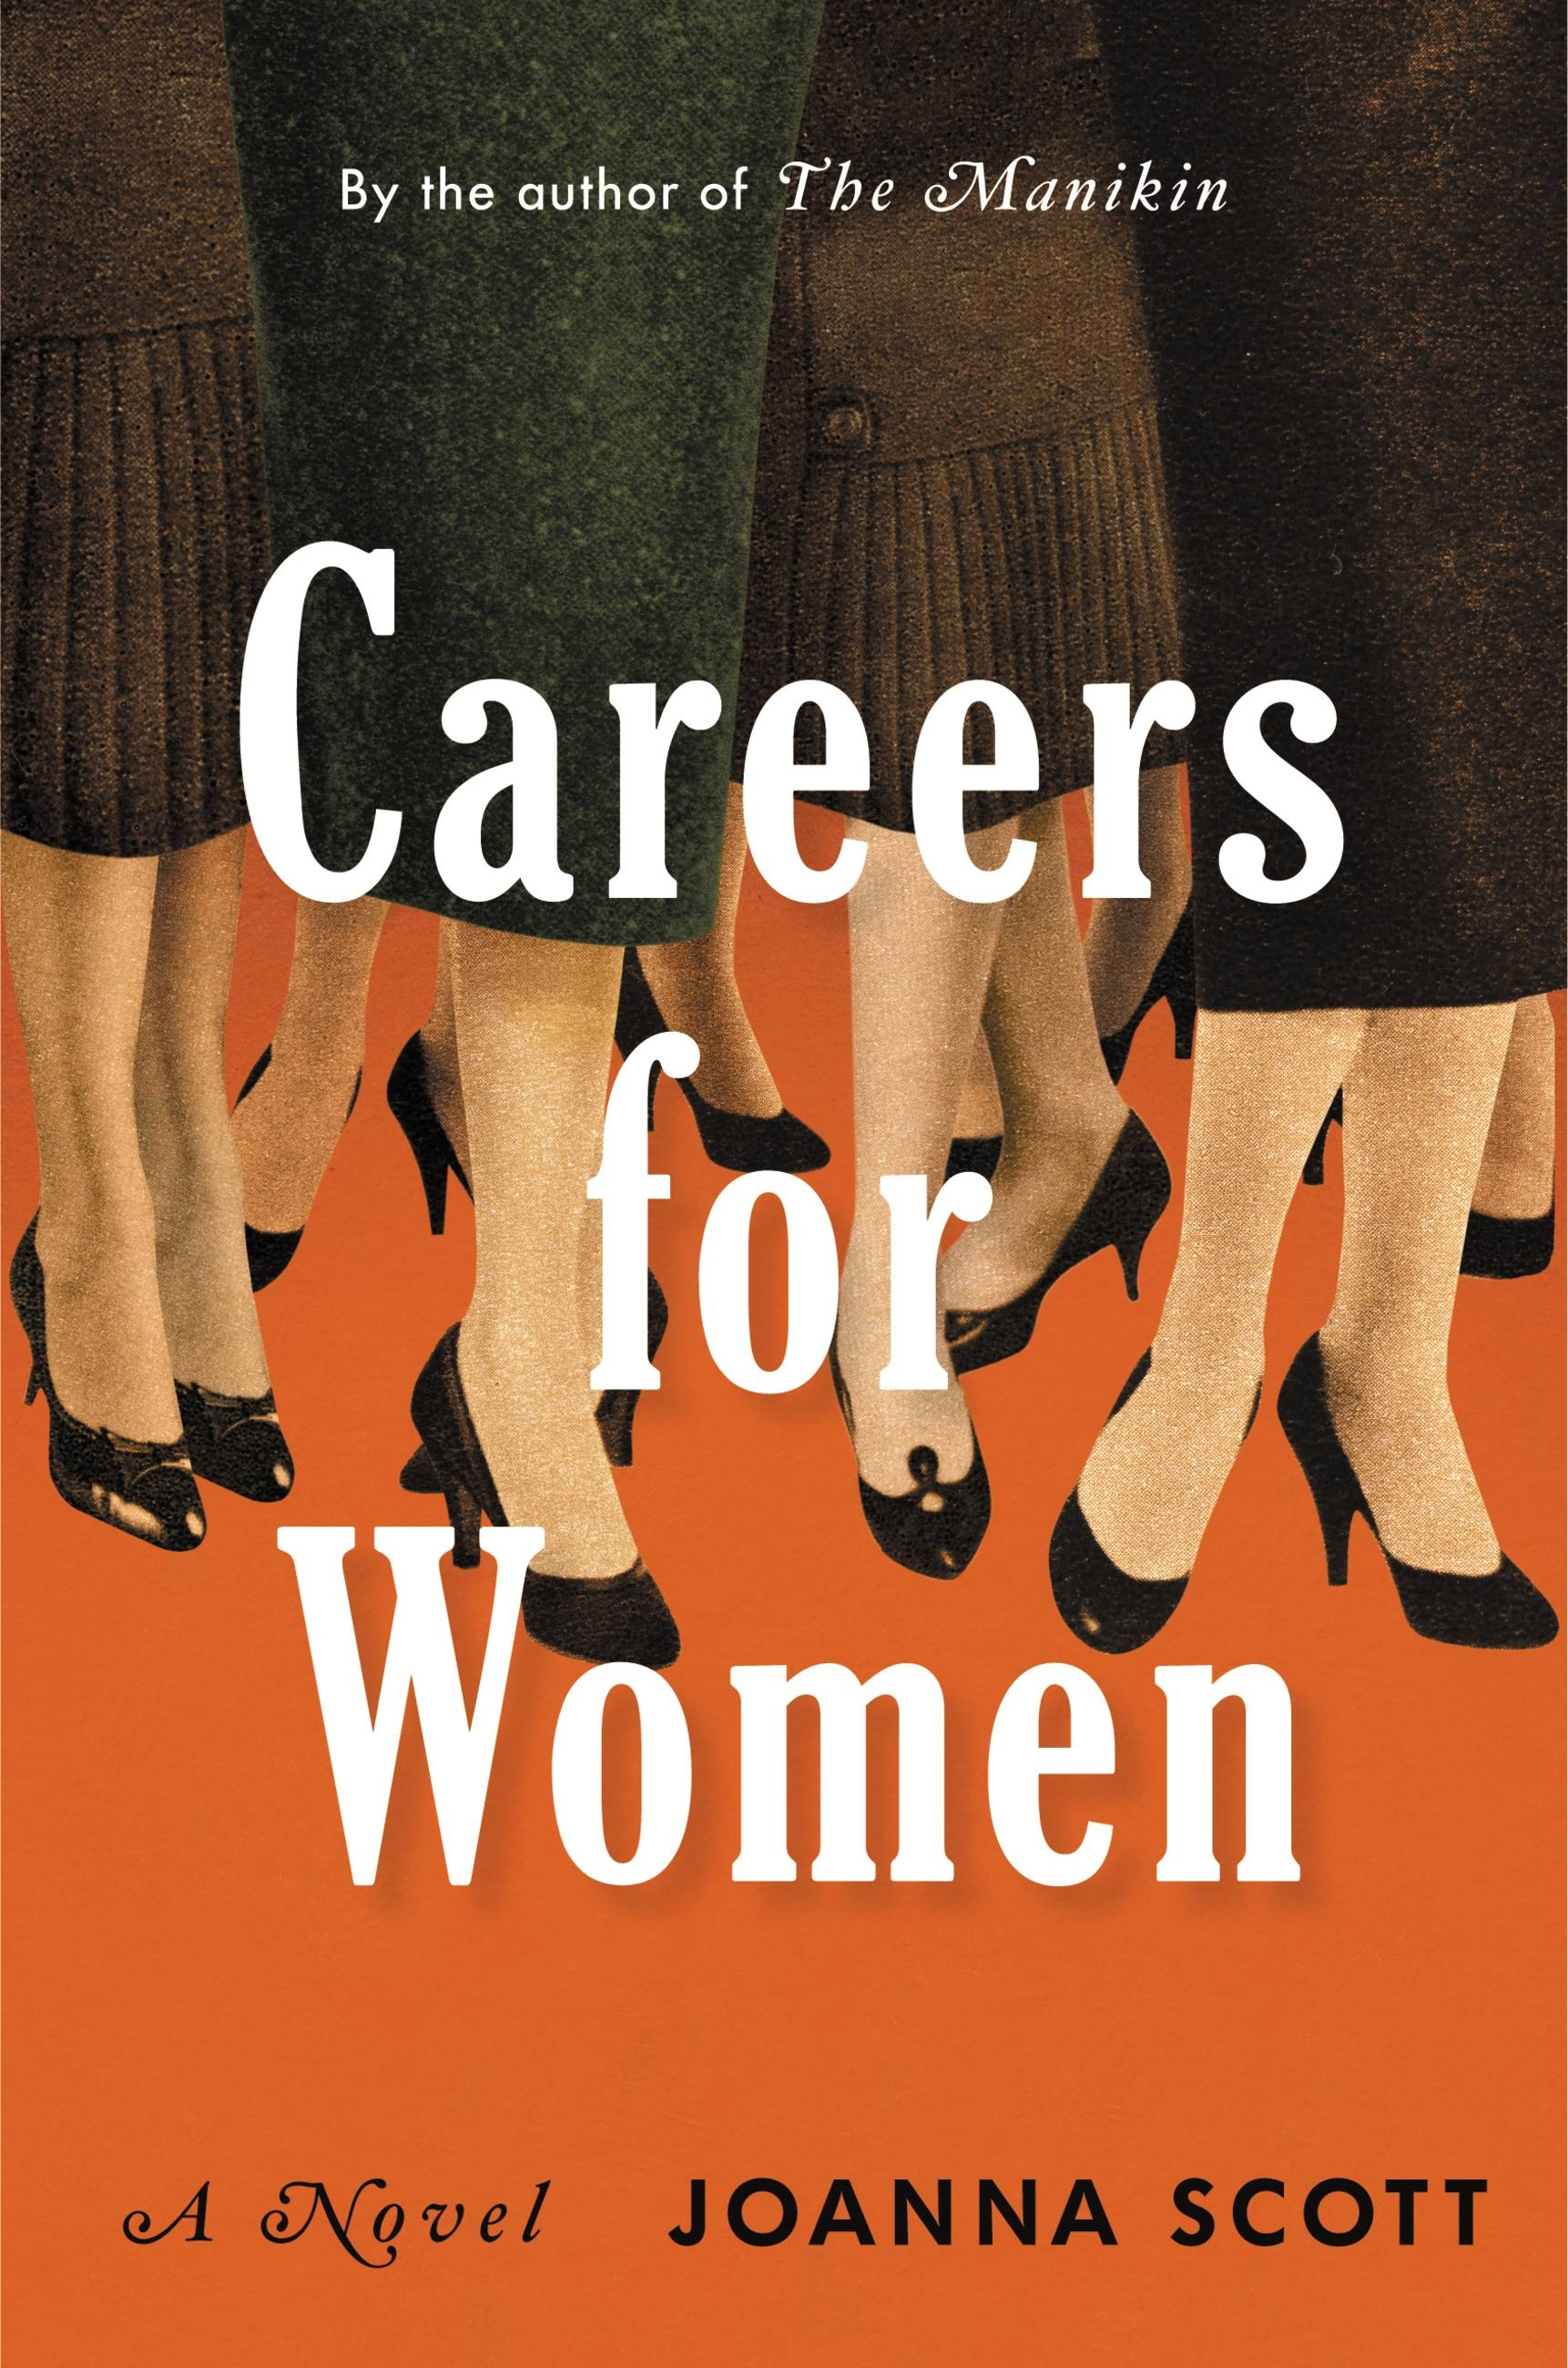 Careers for Women - Hachette Book Group